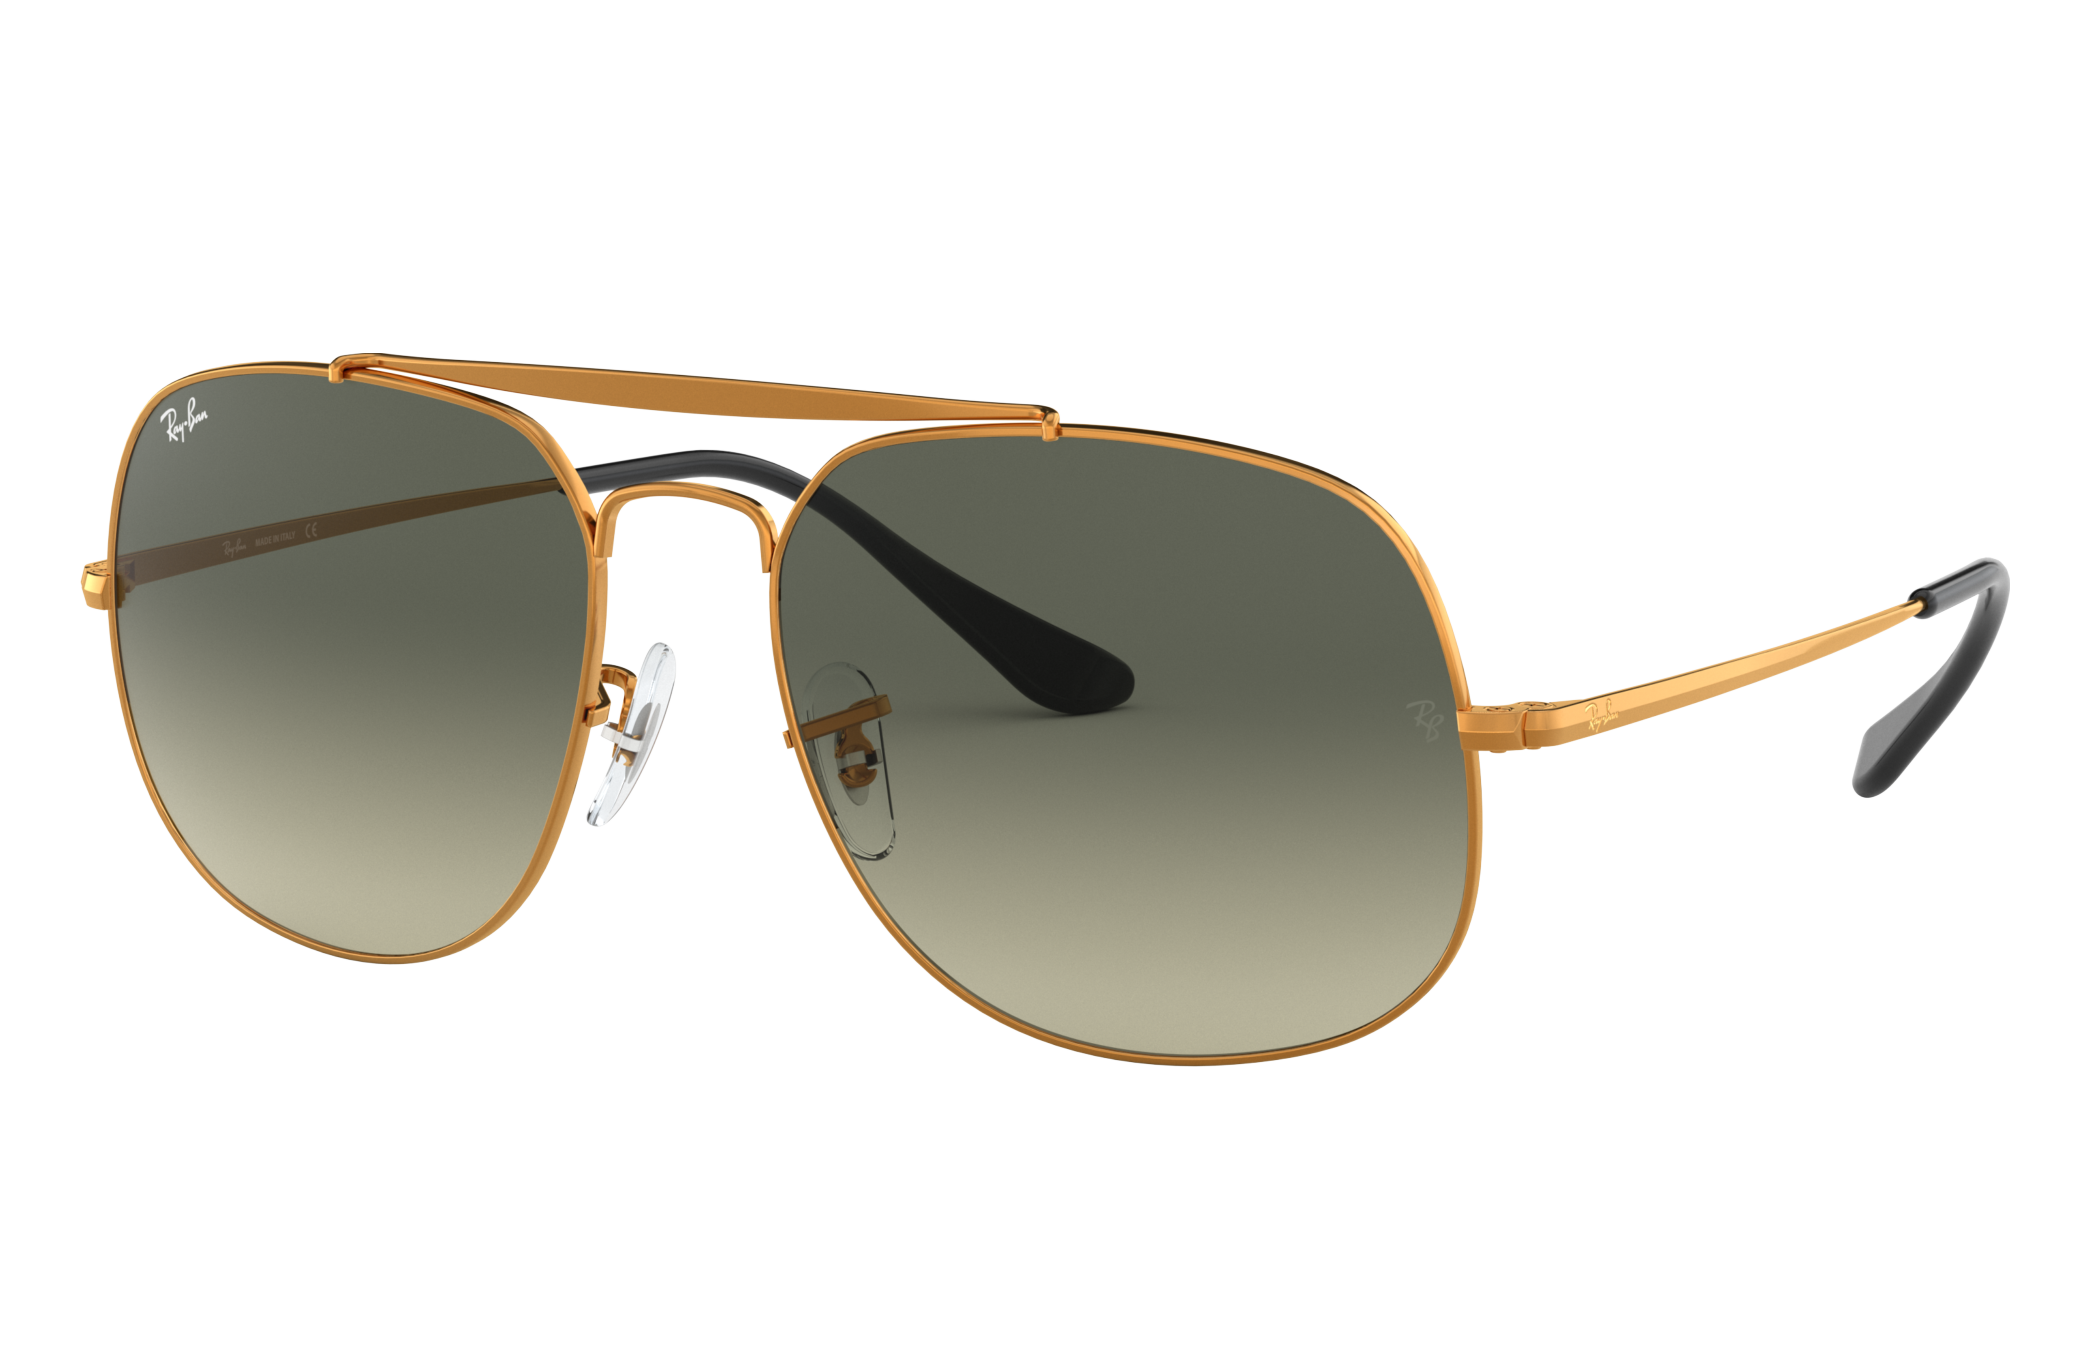 Ray-Ban General Bronze-Copper, Gray Lenses - RB3561